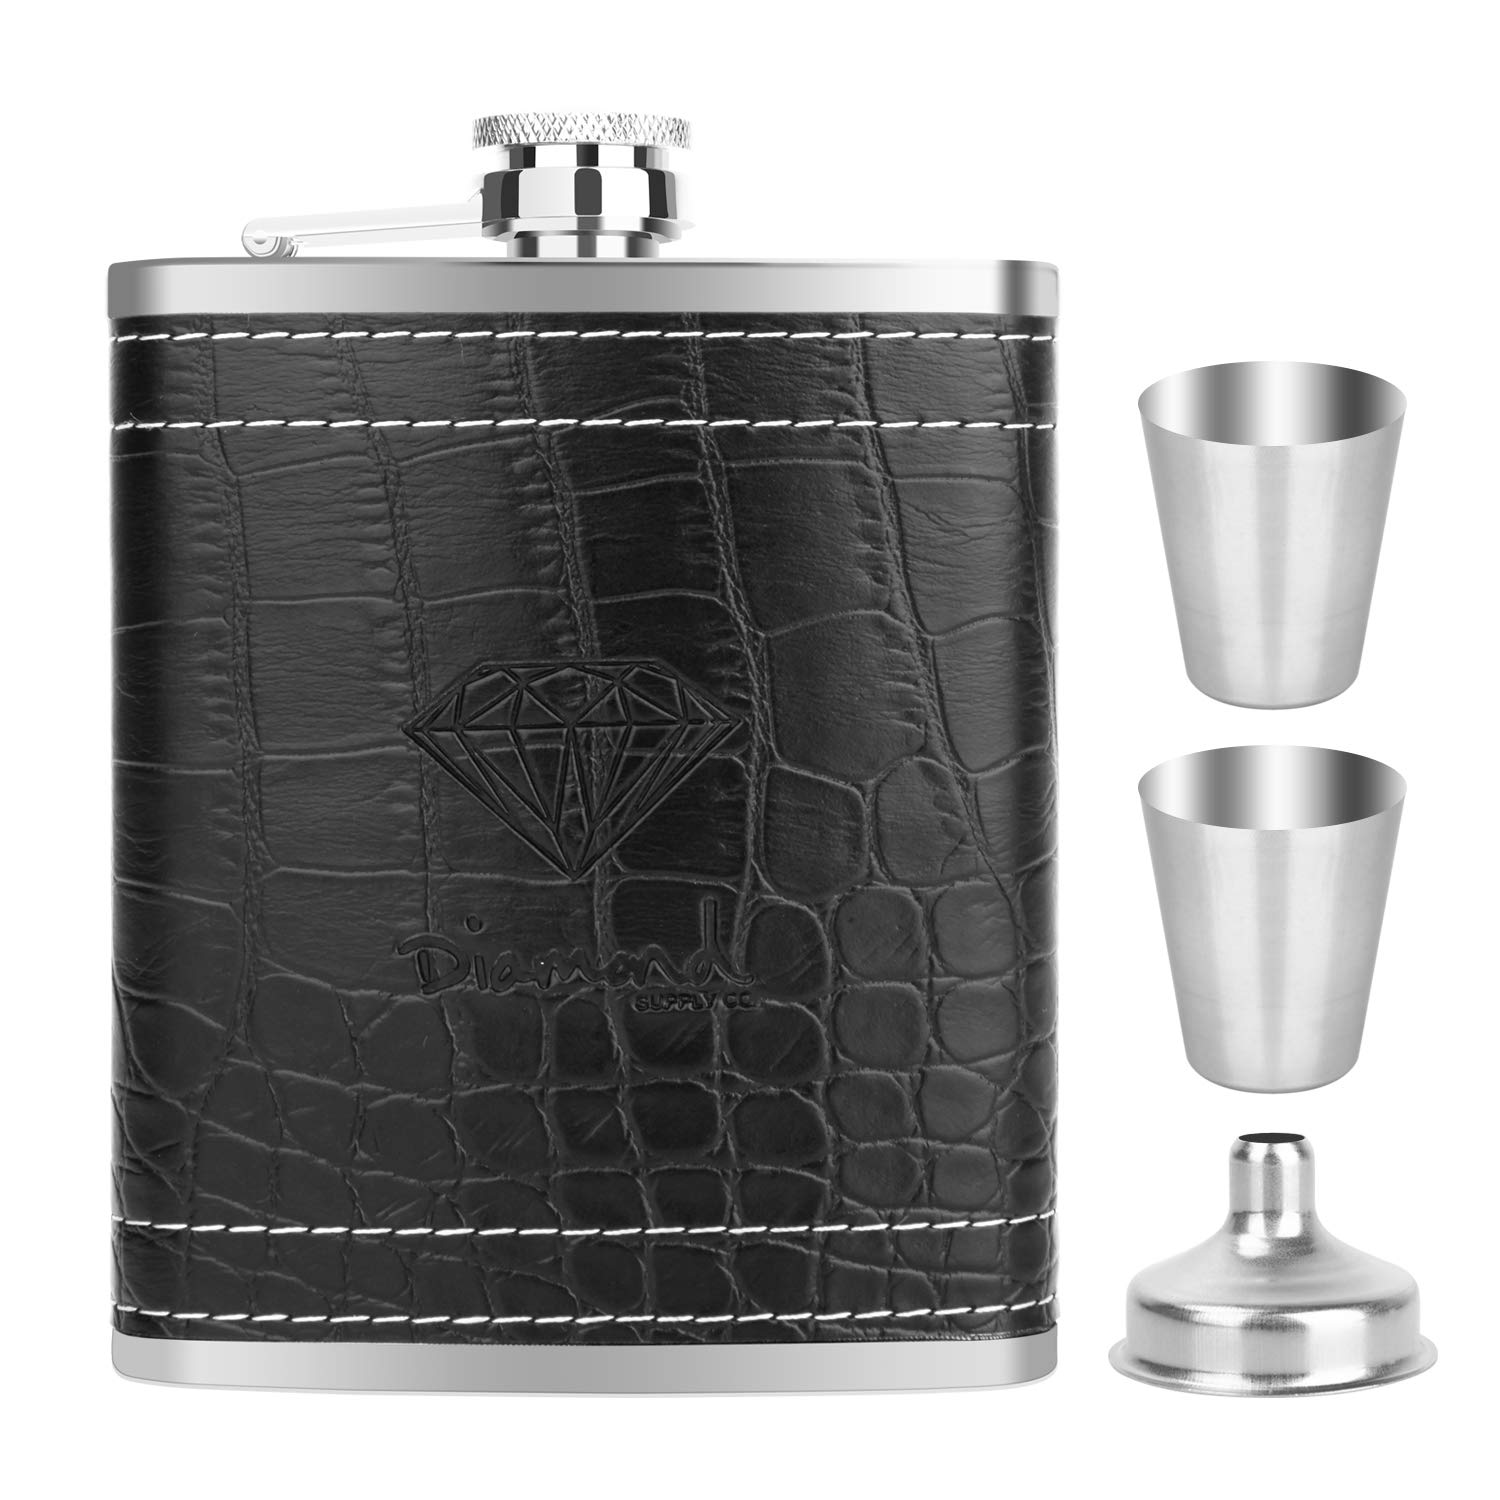 FIGEN 7 OZ Stainless Steel Black PU Leather Premium Heavy Duty Hip Flask Gift Set - Includes Funnel and 4 Little Cups, for Discrete Shot Drinking of Alcohol, Whiskey, Rum and Vodka | Gift for Men